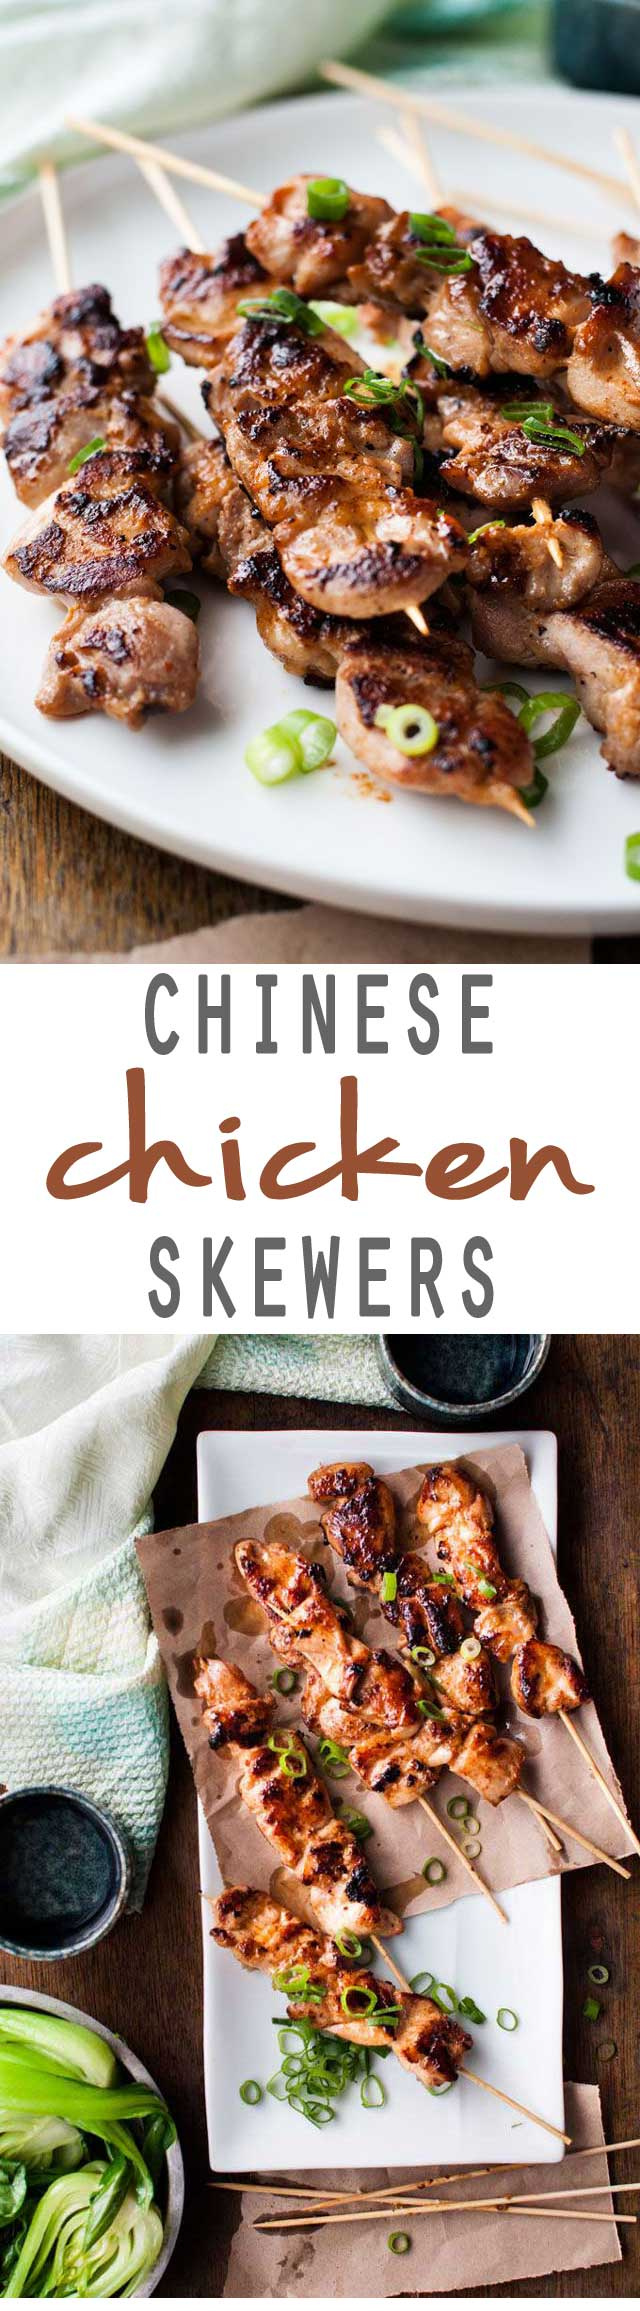 Chinese Chicken Skewers Guest Post From Recipetin Eats Jo Cooks